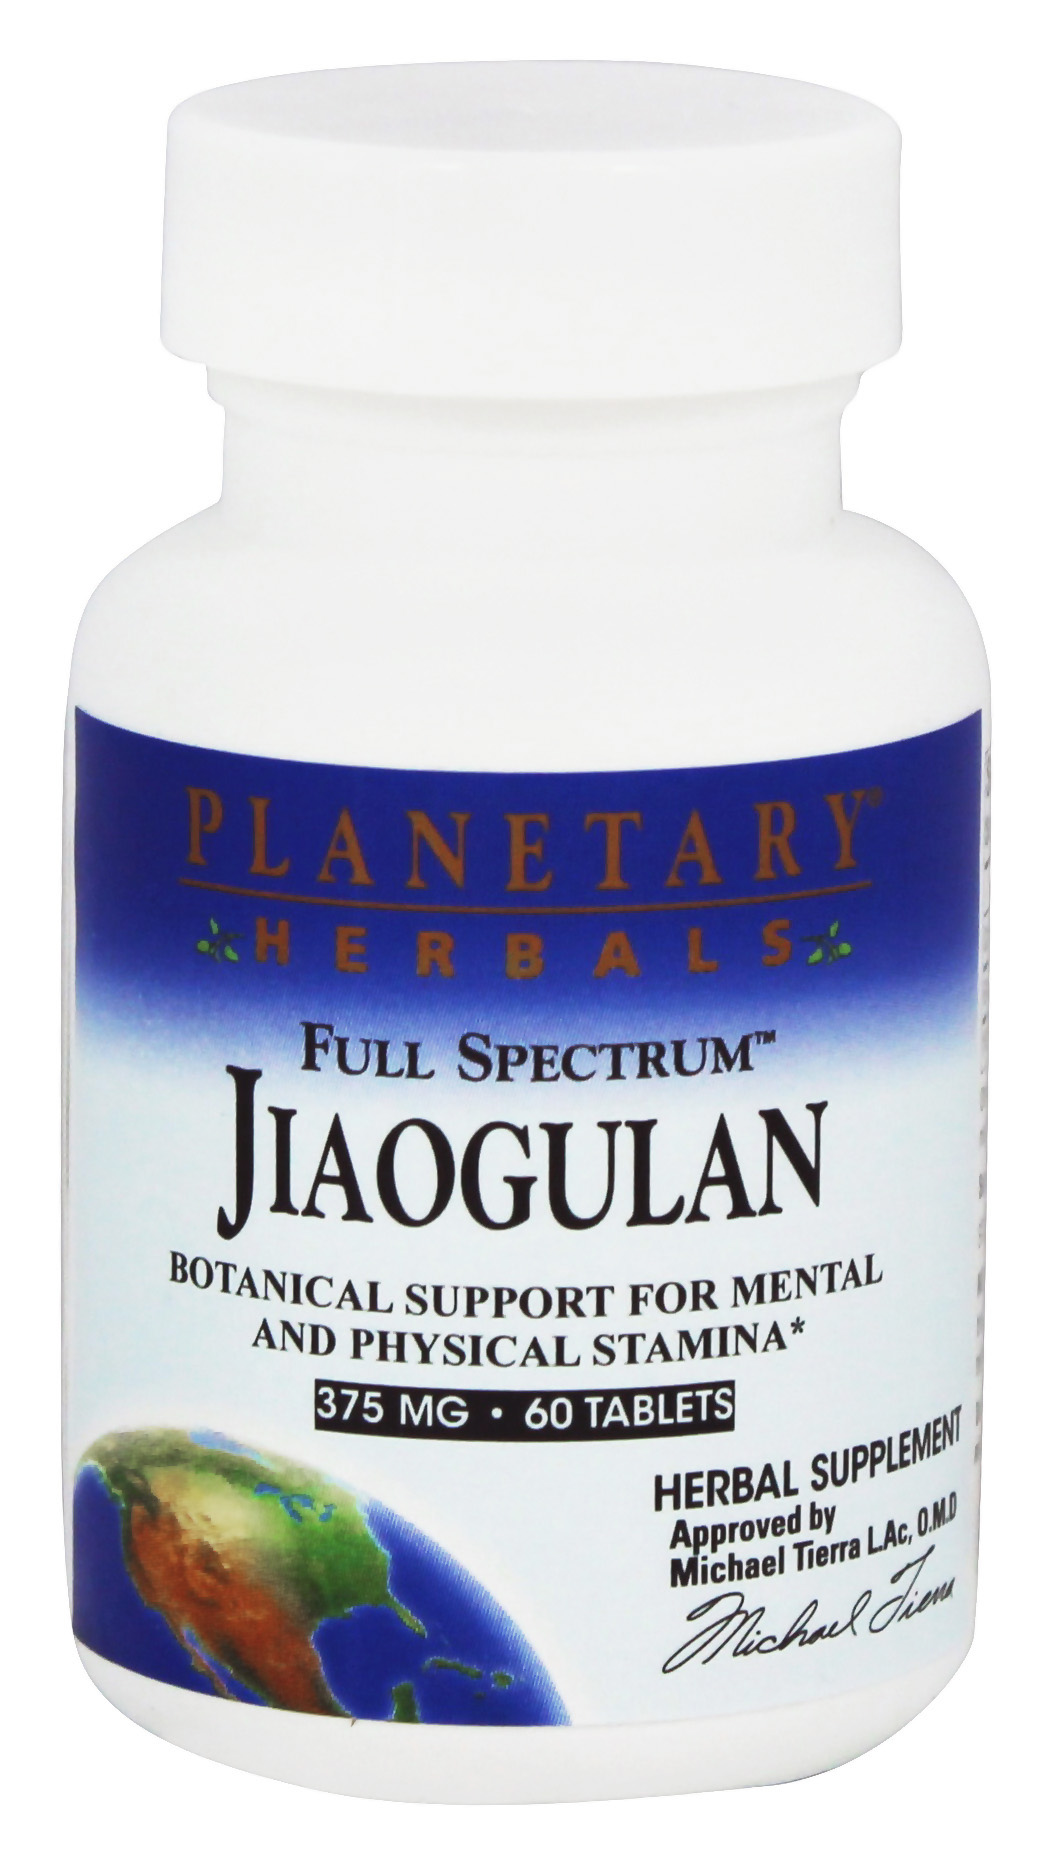 Planetary Herbals - Full Spectrum Jiaogulan 375 mg. - 60 Tablets